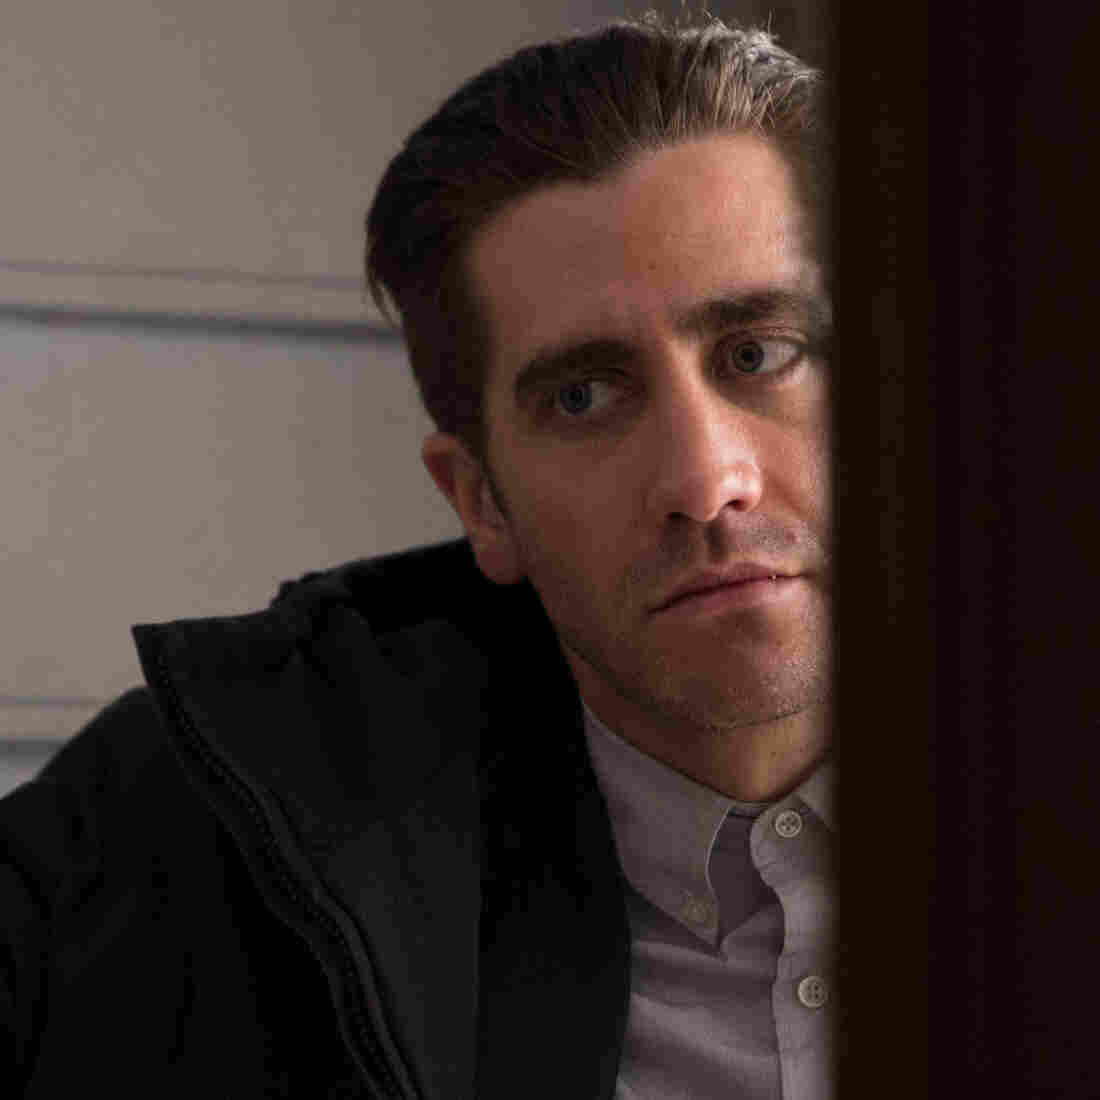 Jake Gyllenhaal, Going After What's Real